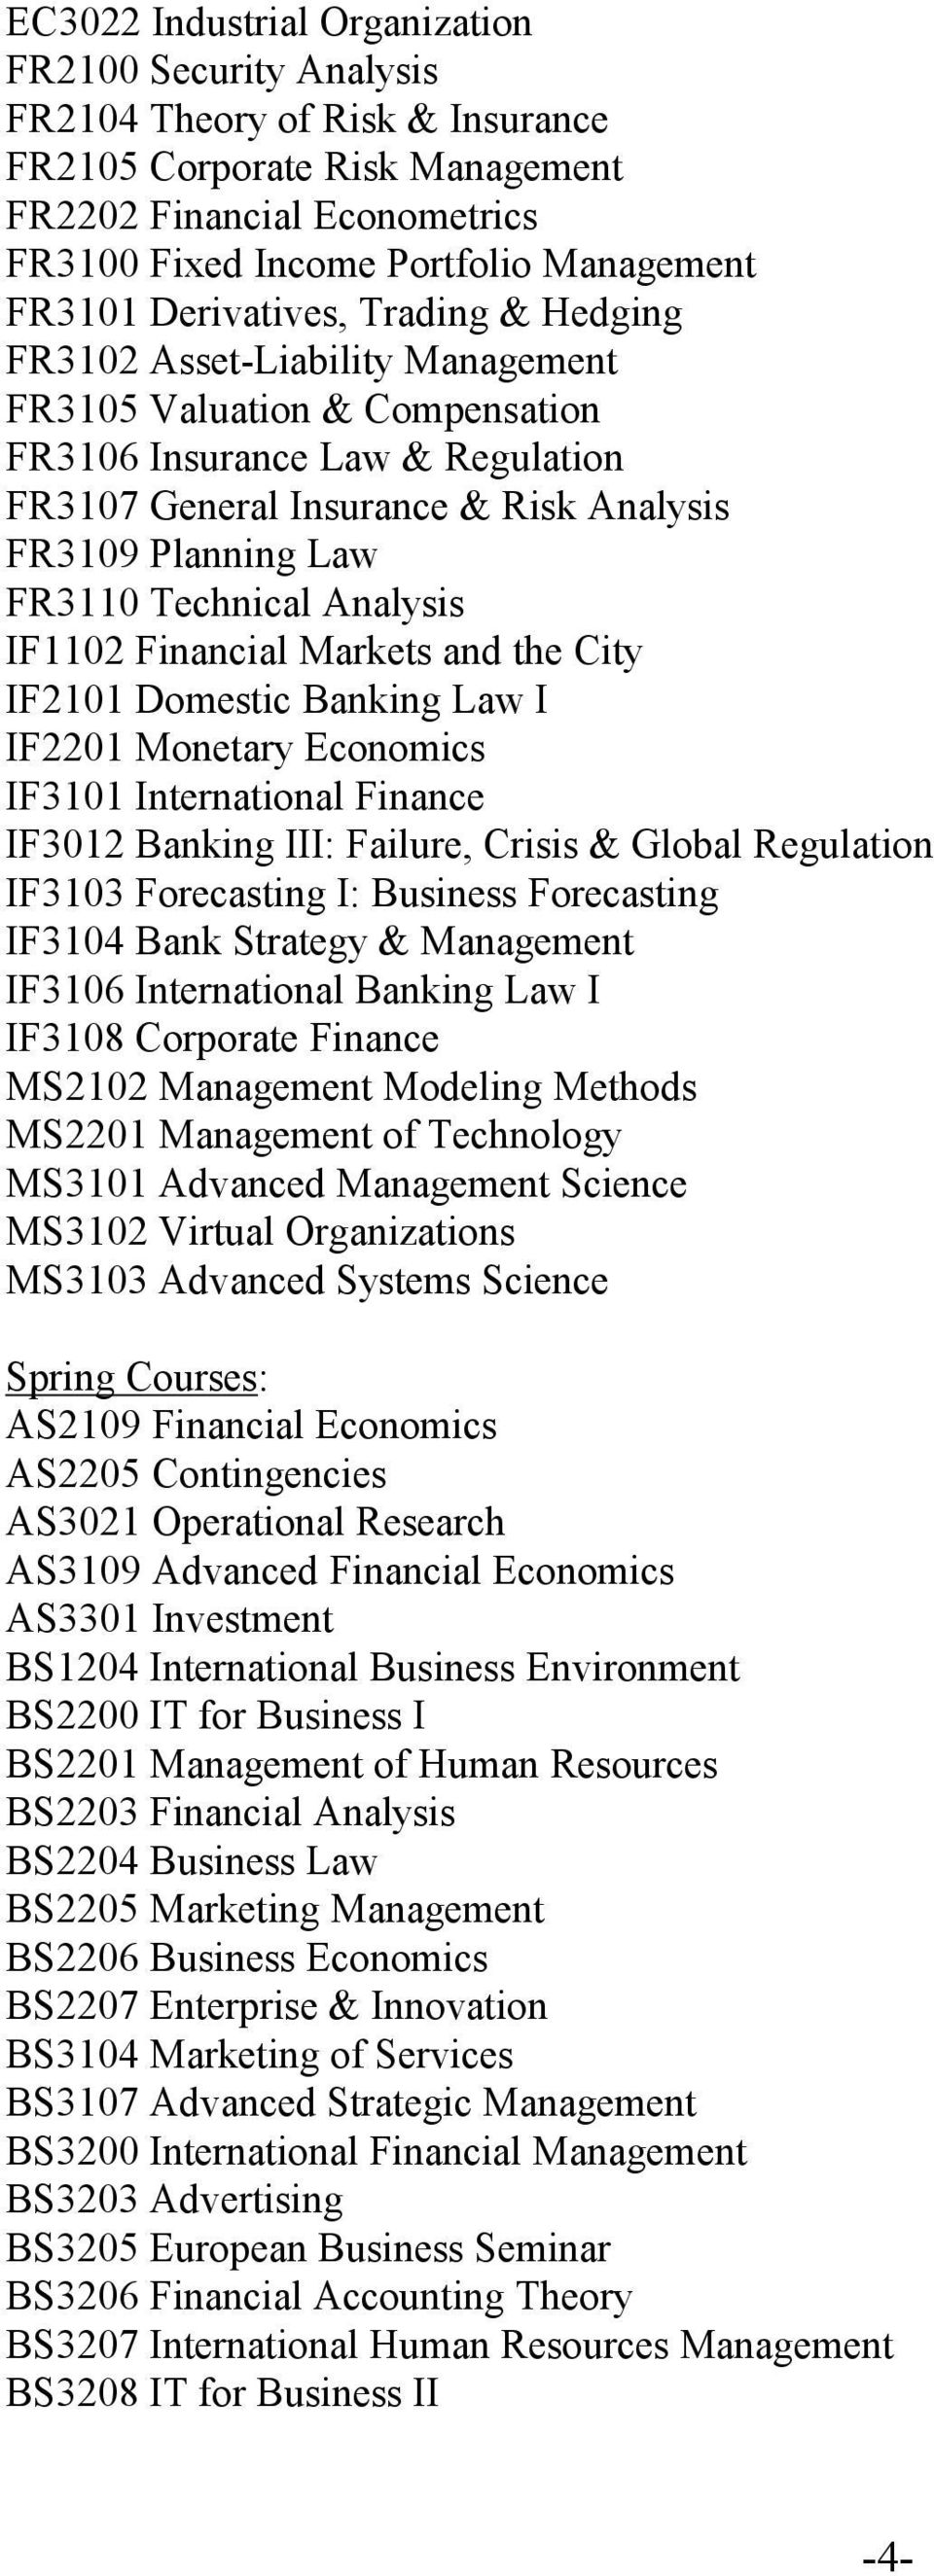 FR3110 Technical Analysis IF1102 Financial Markets and the City IF2101 Domestic Banking Law I IF2201 Monetary Economics IF3101 International Finance IF3012 Banking III: Failure, Crisis & Global